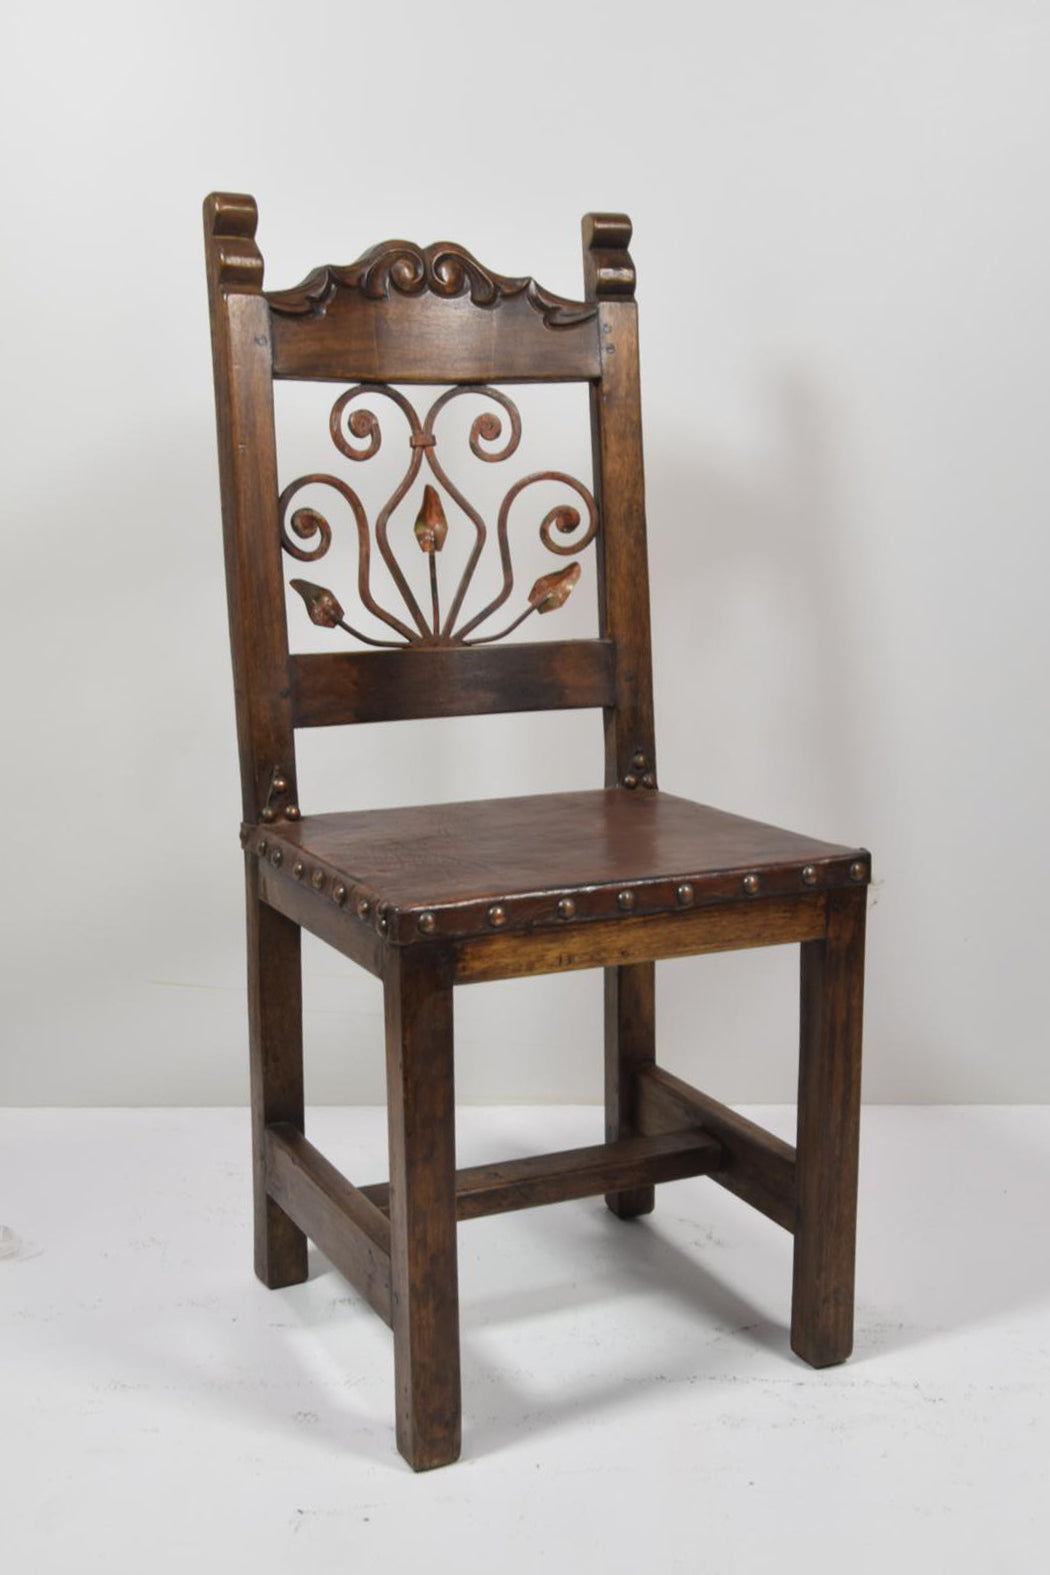 Barnwood and Wrought Iron Dining Chair - Hearts